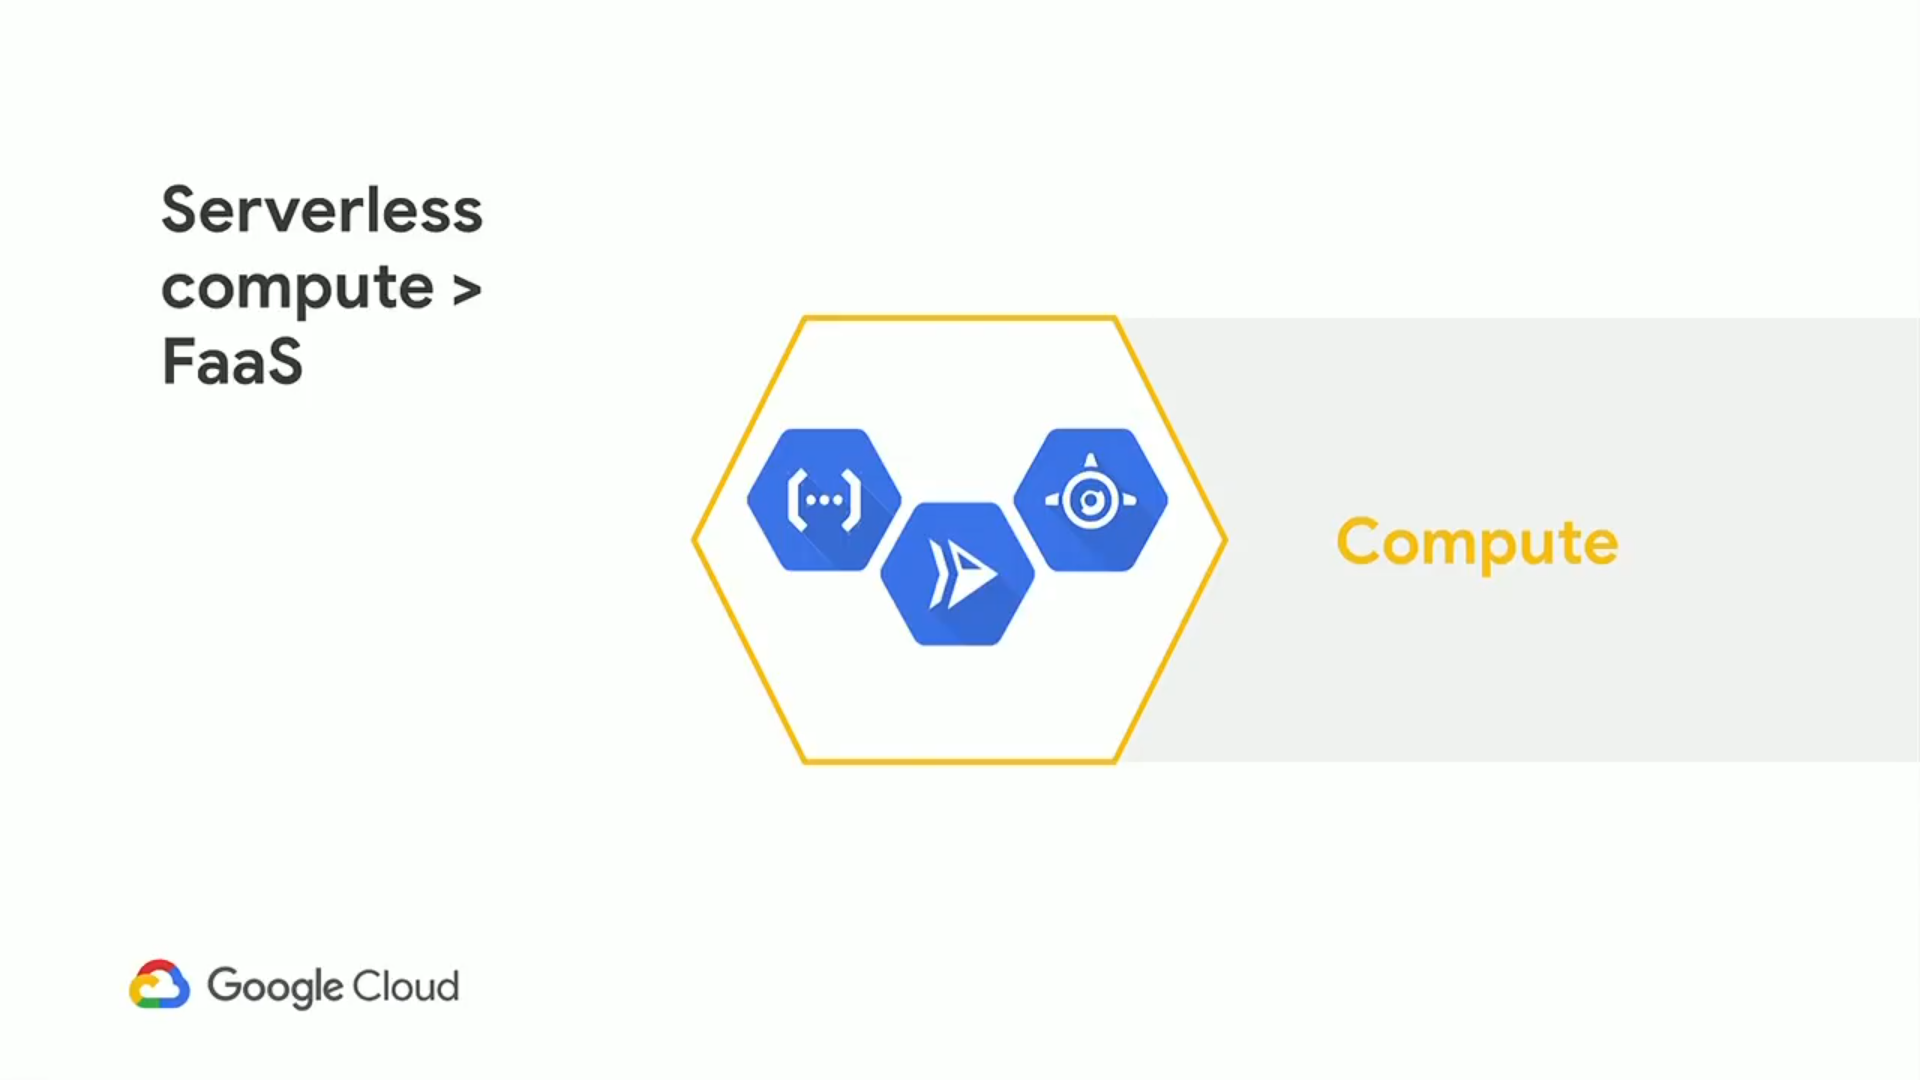 serverless-more-than-faas.png